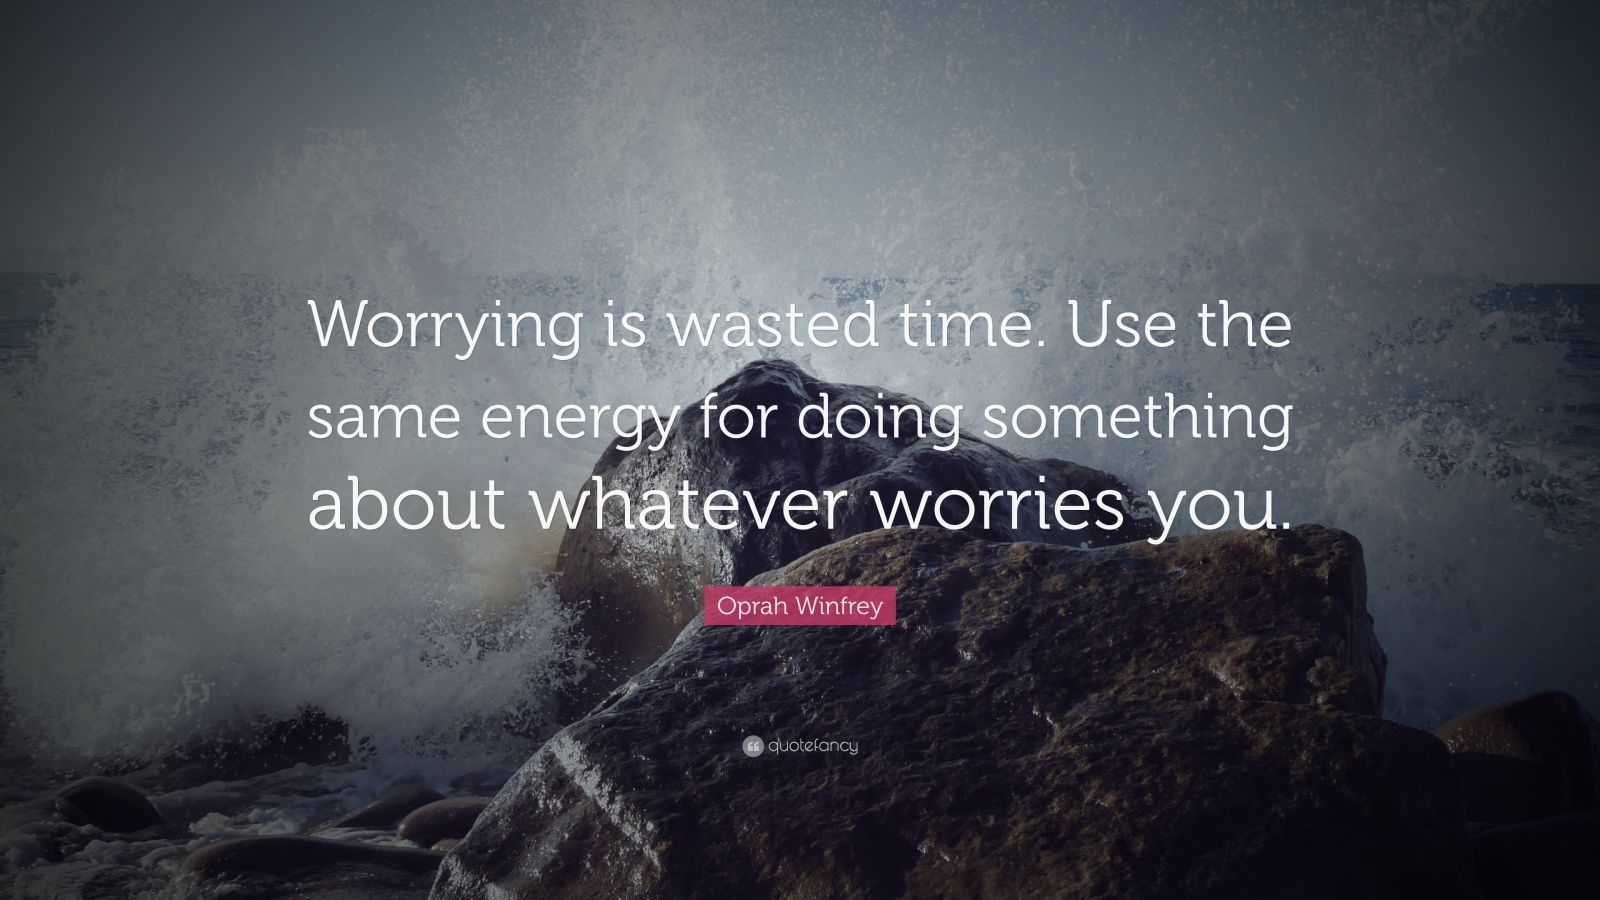 """Oprah Winfrey Quote: """"Worrying is wasted time. Use the same energy for doing something about whatever worries you."""""""